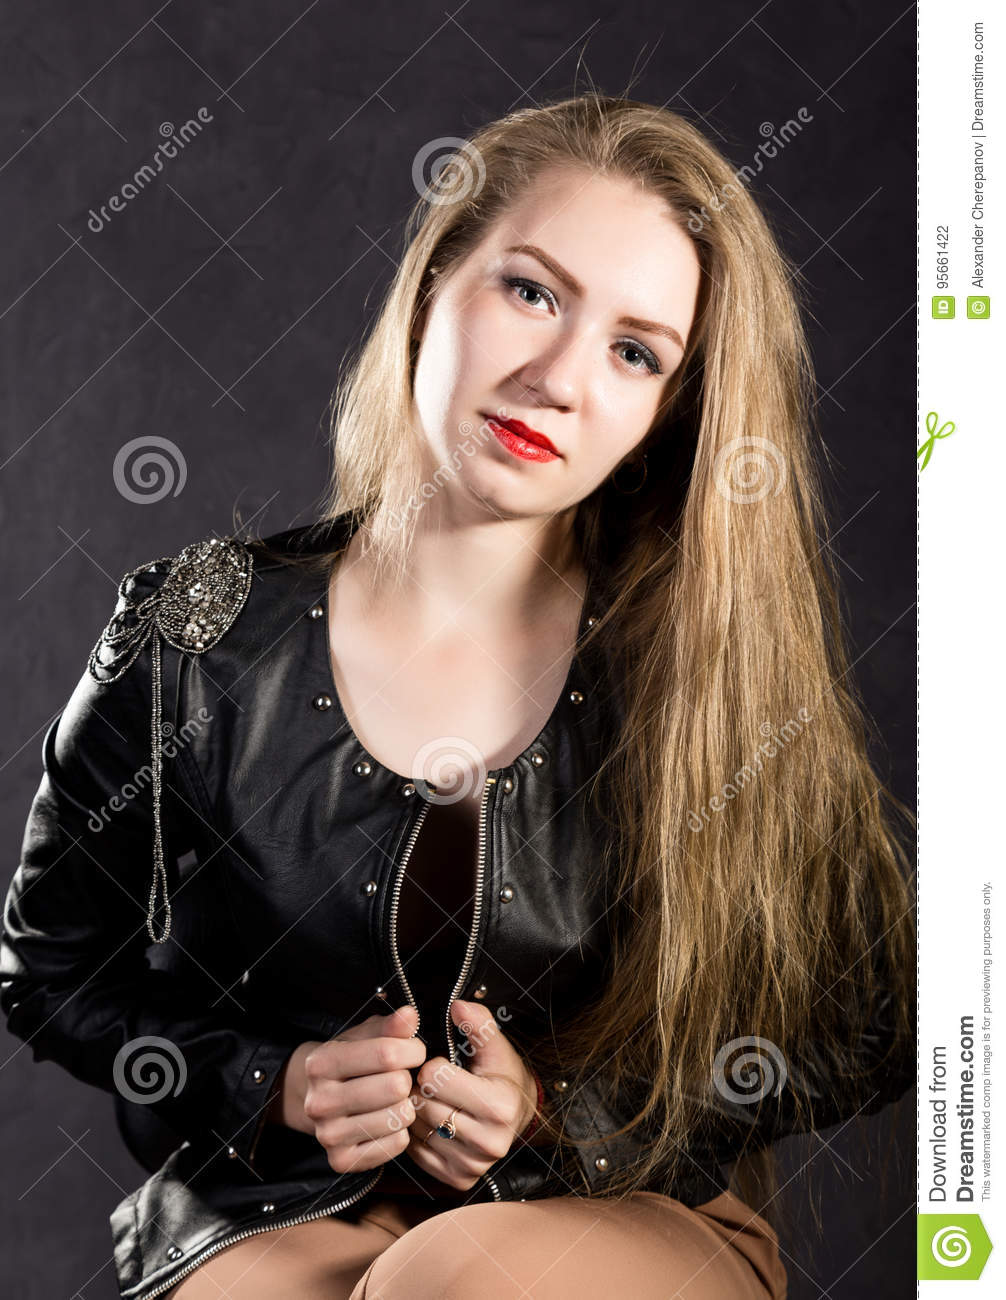 Beautiful young woman in a leather jacket posing on a gray background